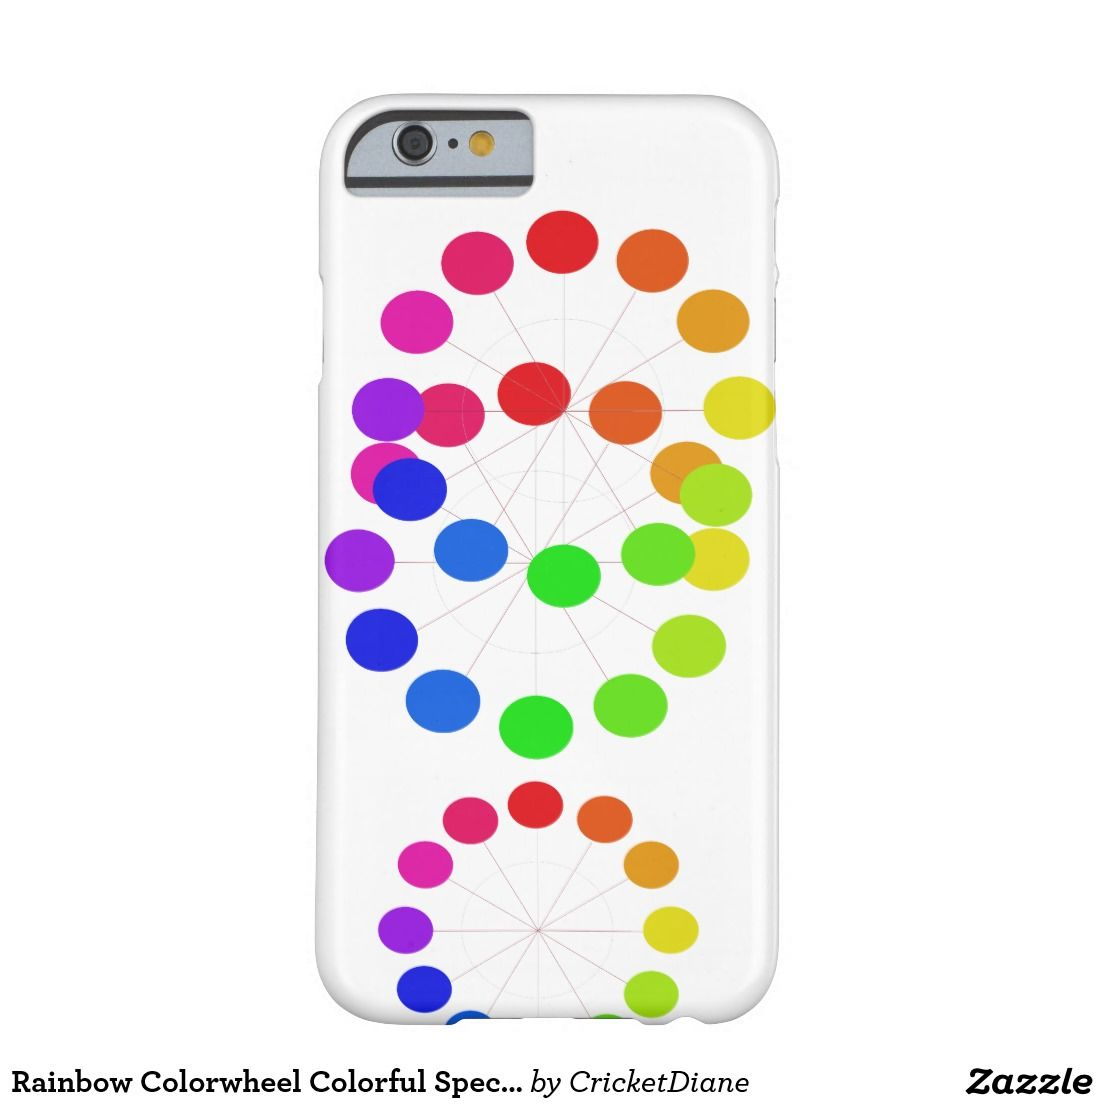 Rainbow Colorwheel Colorful Spectrum Colors Pride Barely There iPhone 6 Case